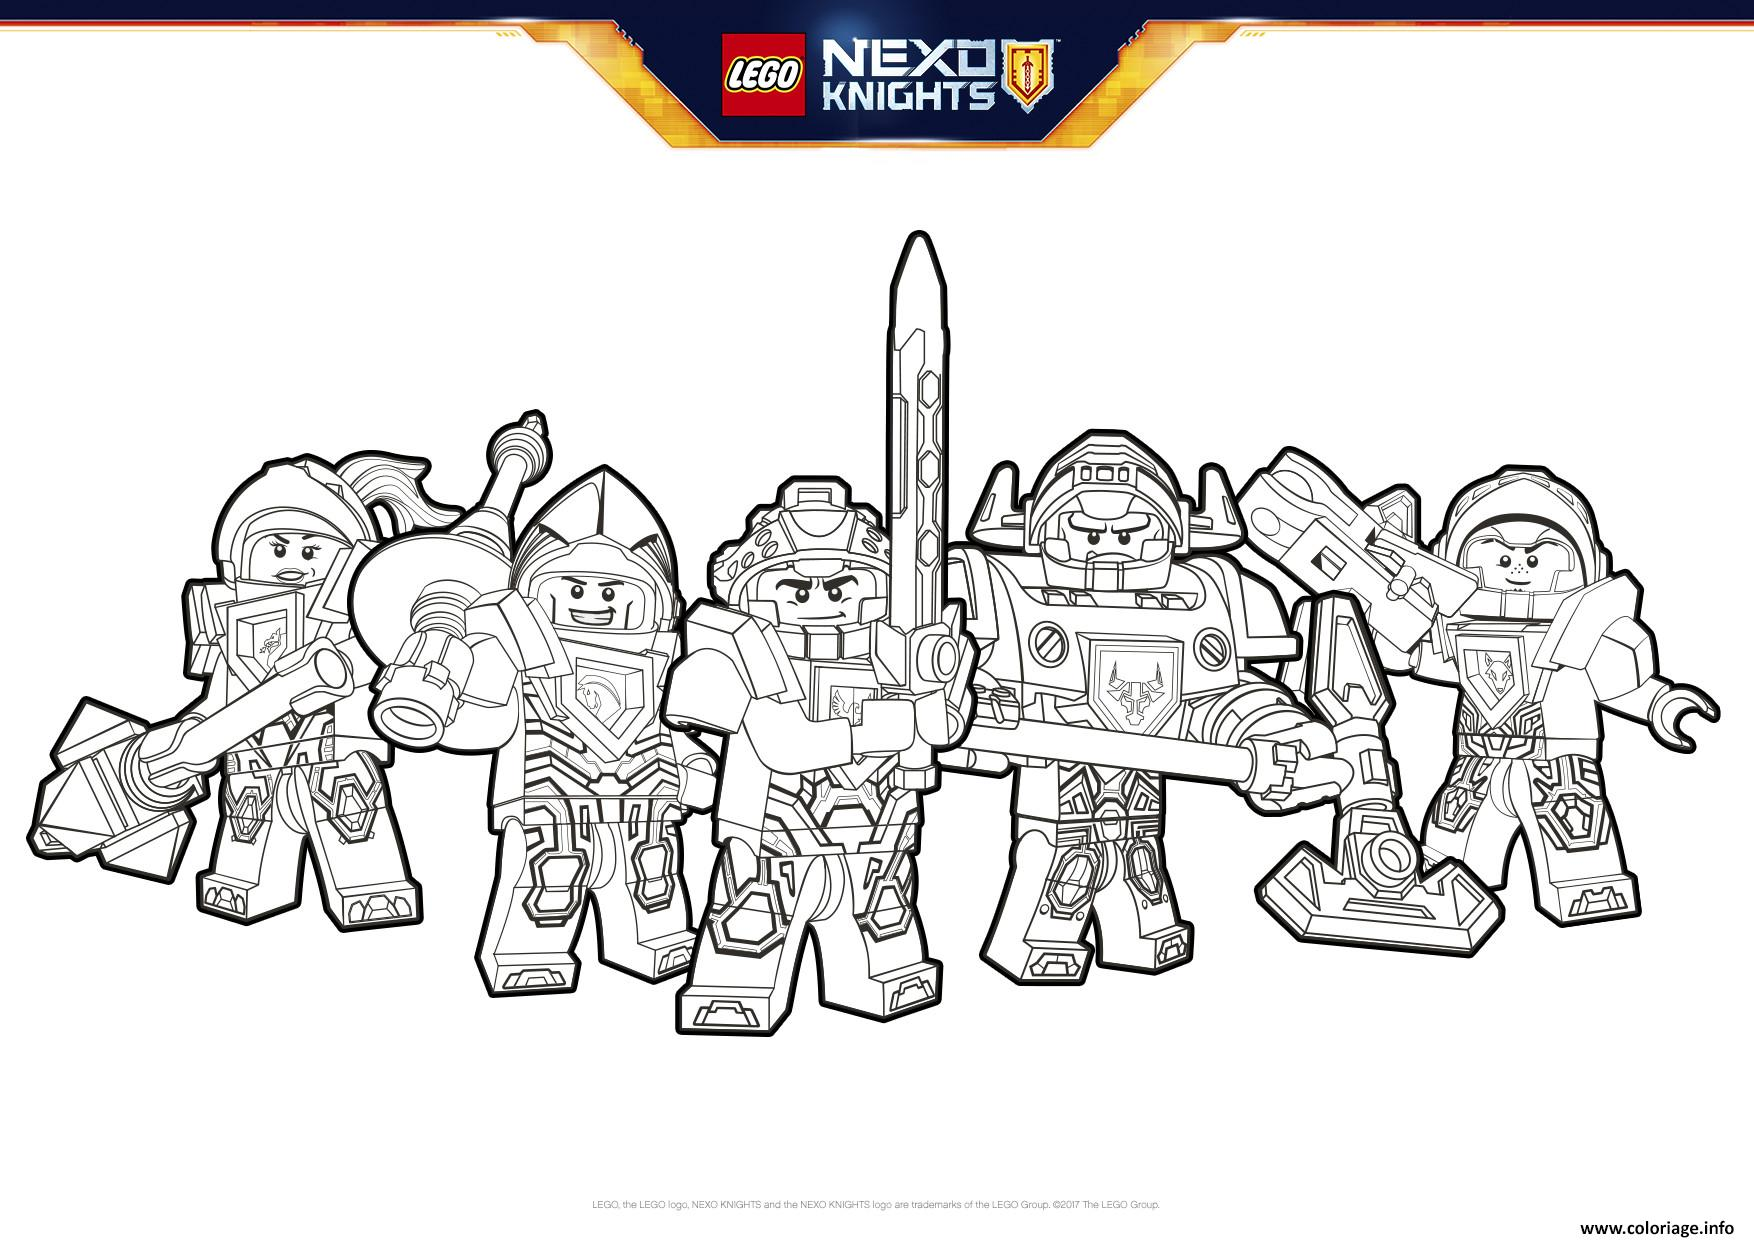 nexo knights coloring pages - coloriage lego nexo knights formation